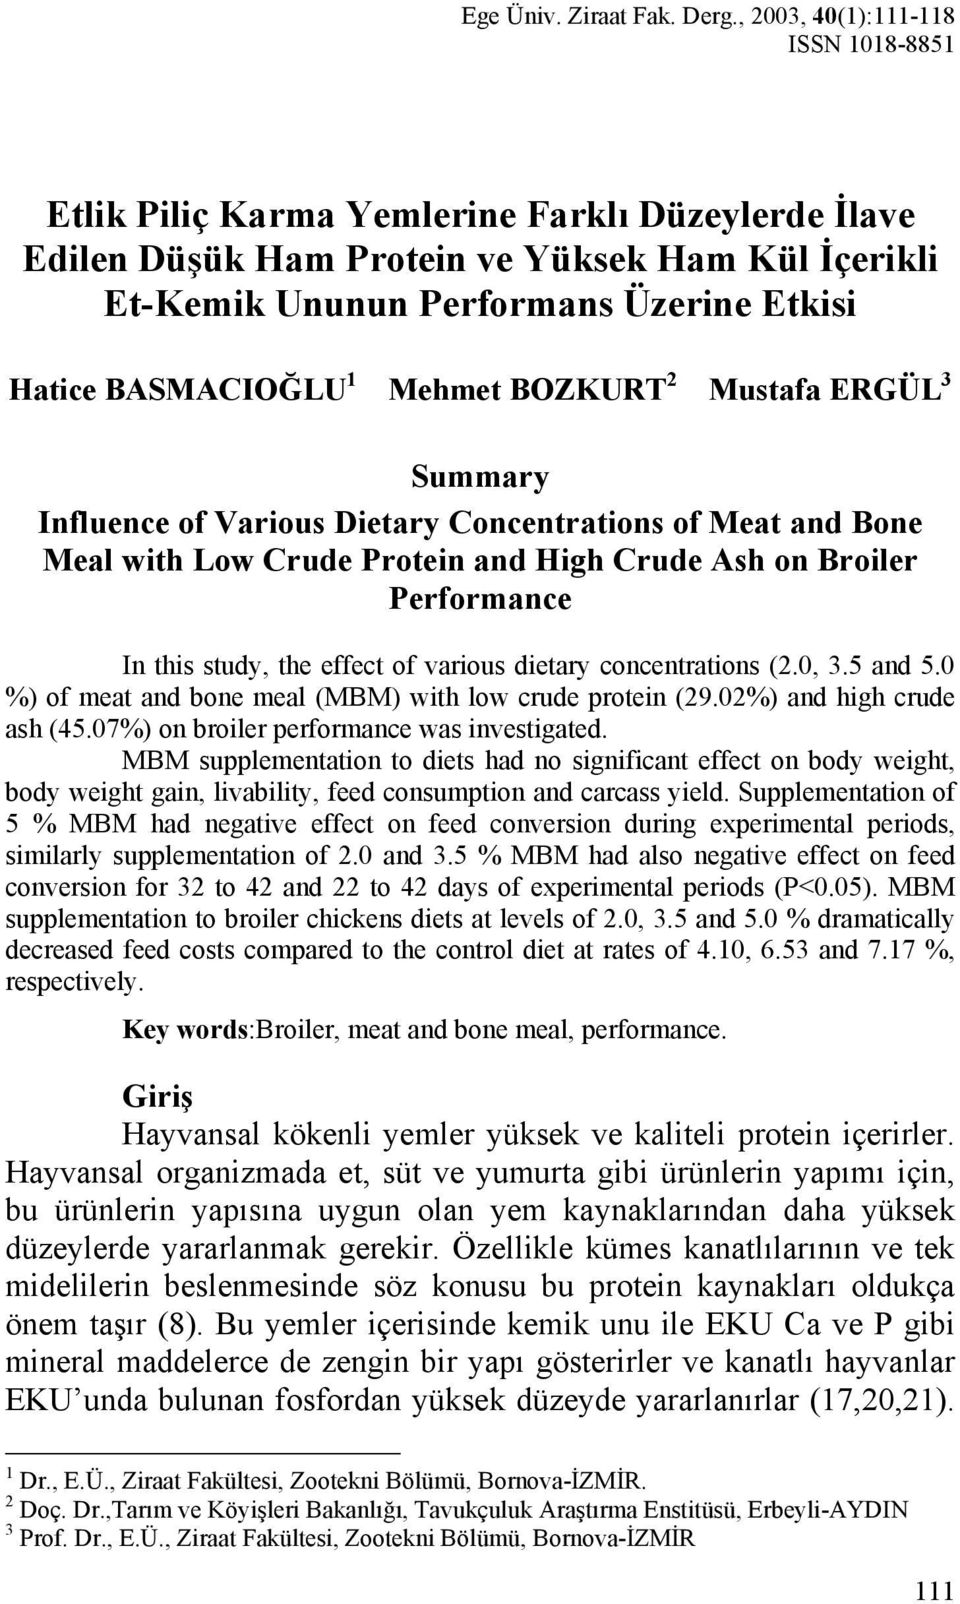 BASMACIOĞLU 1 Mehmet BOZKURT 2 Mustafa ERGÜL 3 Summary Influence of Various Dietary Concentrations of Meat and Bone Meal with Low Crude Protein and High Crude Ash on Broiler Performance In this